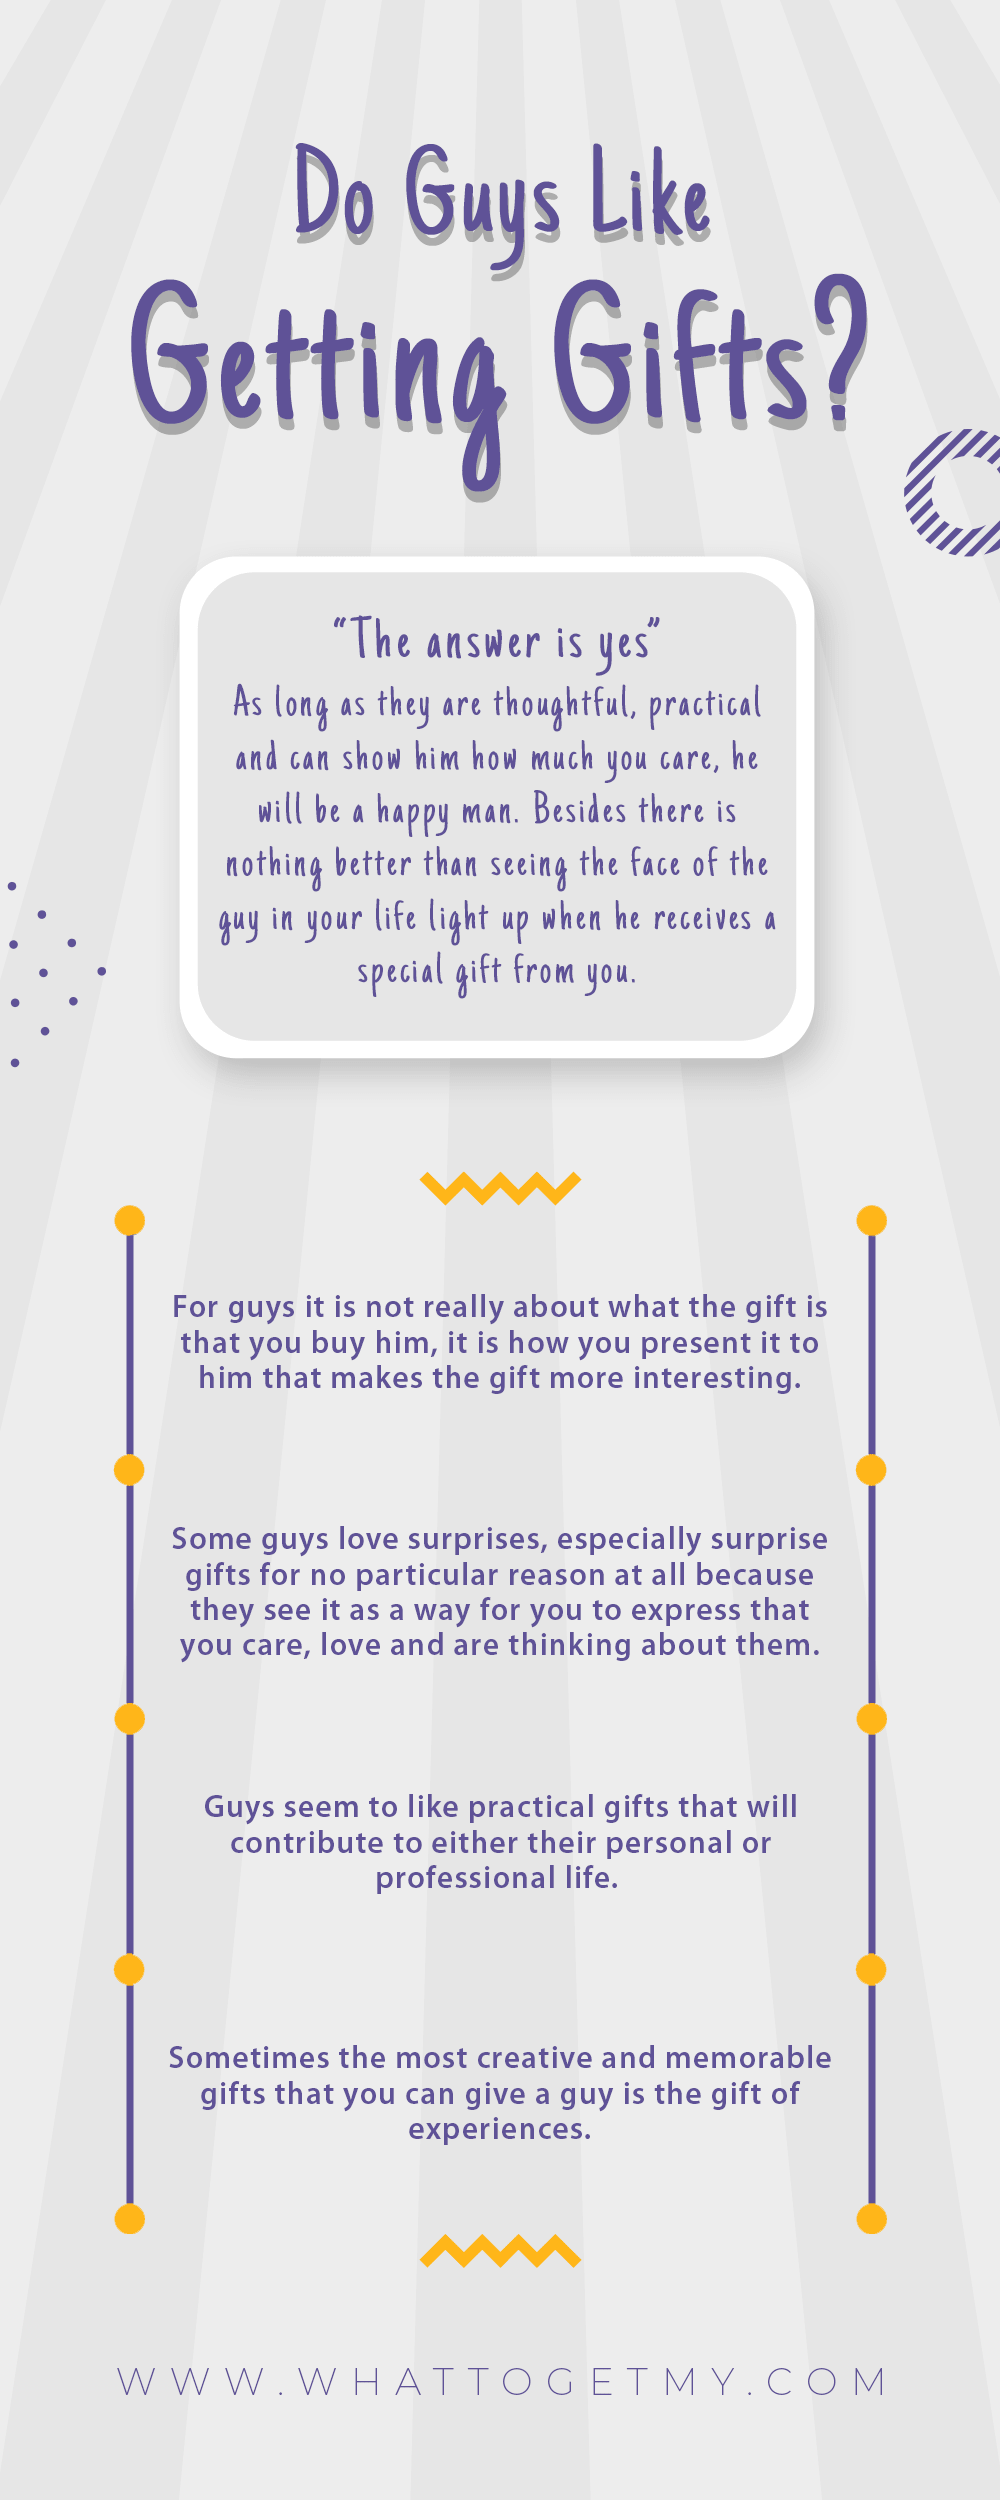 Infographic DO GUYS LIKE GETTING GIFTS